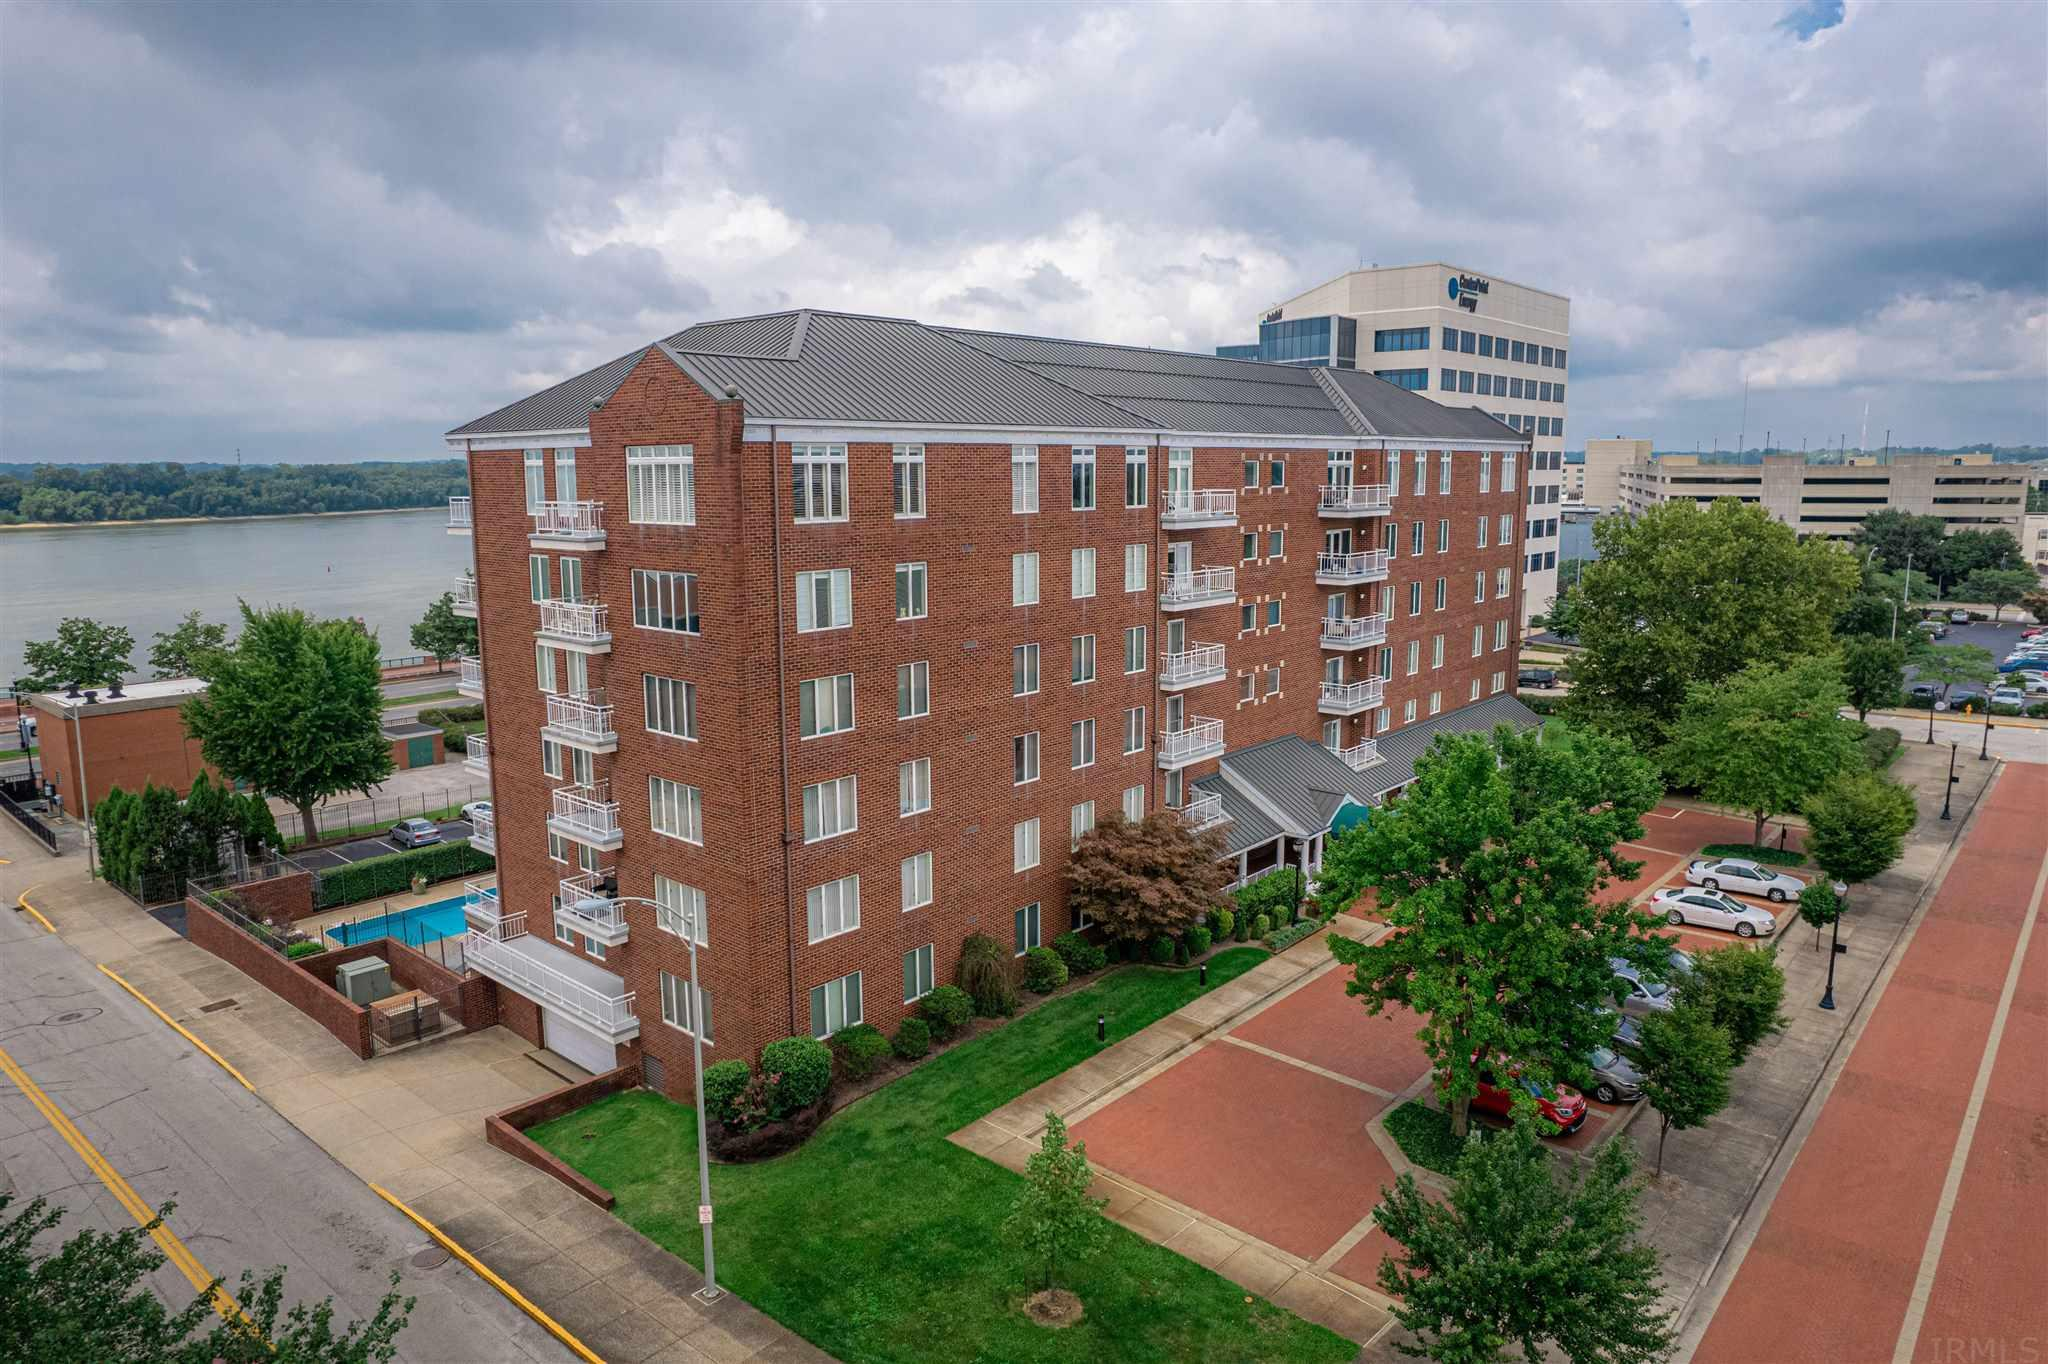 The real estate consists of one of the largest units in the Riverfront Condominium complex: a wonderful 1,930 sq. ft., 2 bedroom, 2 bath home conveniently located on the first floor.  The marble tile entry opens into a bright, spacious living / dining area with hardwood flooring, crown molding, built-in entertainment cabinet & beautiful views of the Ohio River that can be enjoyed from inside or from outside on the lovely balcony.  Located off the dining area, the kitchen is equipped with double stainless steel sink, KitchenAid side by side refrigerator, Whirlpool dishwasher, electric cooktop, Frigidaire wall oven and built-in microwave.  Across the hall from the full guest bath, the second bedroom features built-in cabinetry, crown molding, chair rail, ceiling fan & access to the balcony overlooking the river.  The master bedroom suite boasts crown molding, built-in cabinetry, ceiling fan, two closets (one of which is a 8' x 7' walk-in) and full bath with twin sink vanity & shower.  Located off the foyer, the laundry room has a washer & dryer that will be included in the sale.  Riverfront Condominiums offer many wonderful amenities including security, a party room with kitchen, a beautiful pool with river views, a secure underground parking garage with a reserved parking spot for each unit, two storage areas (one on the unit floor & one in the parking garage) and a reserved space in the parking lot. The monthly association fee of $567 includes water, trash, basic Wow cable and covers commons area maintenance.